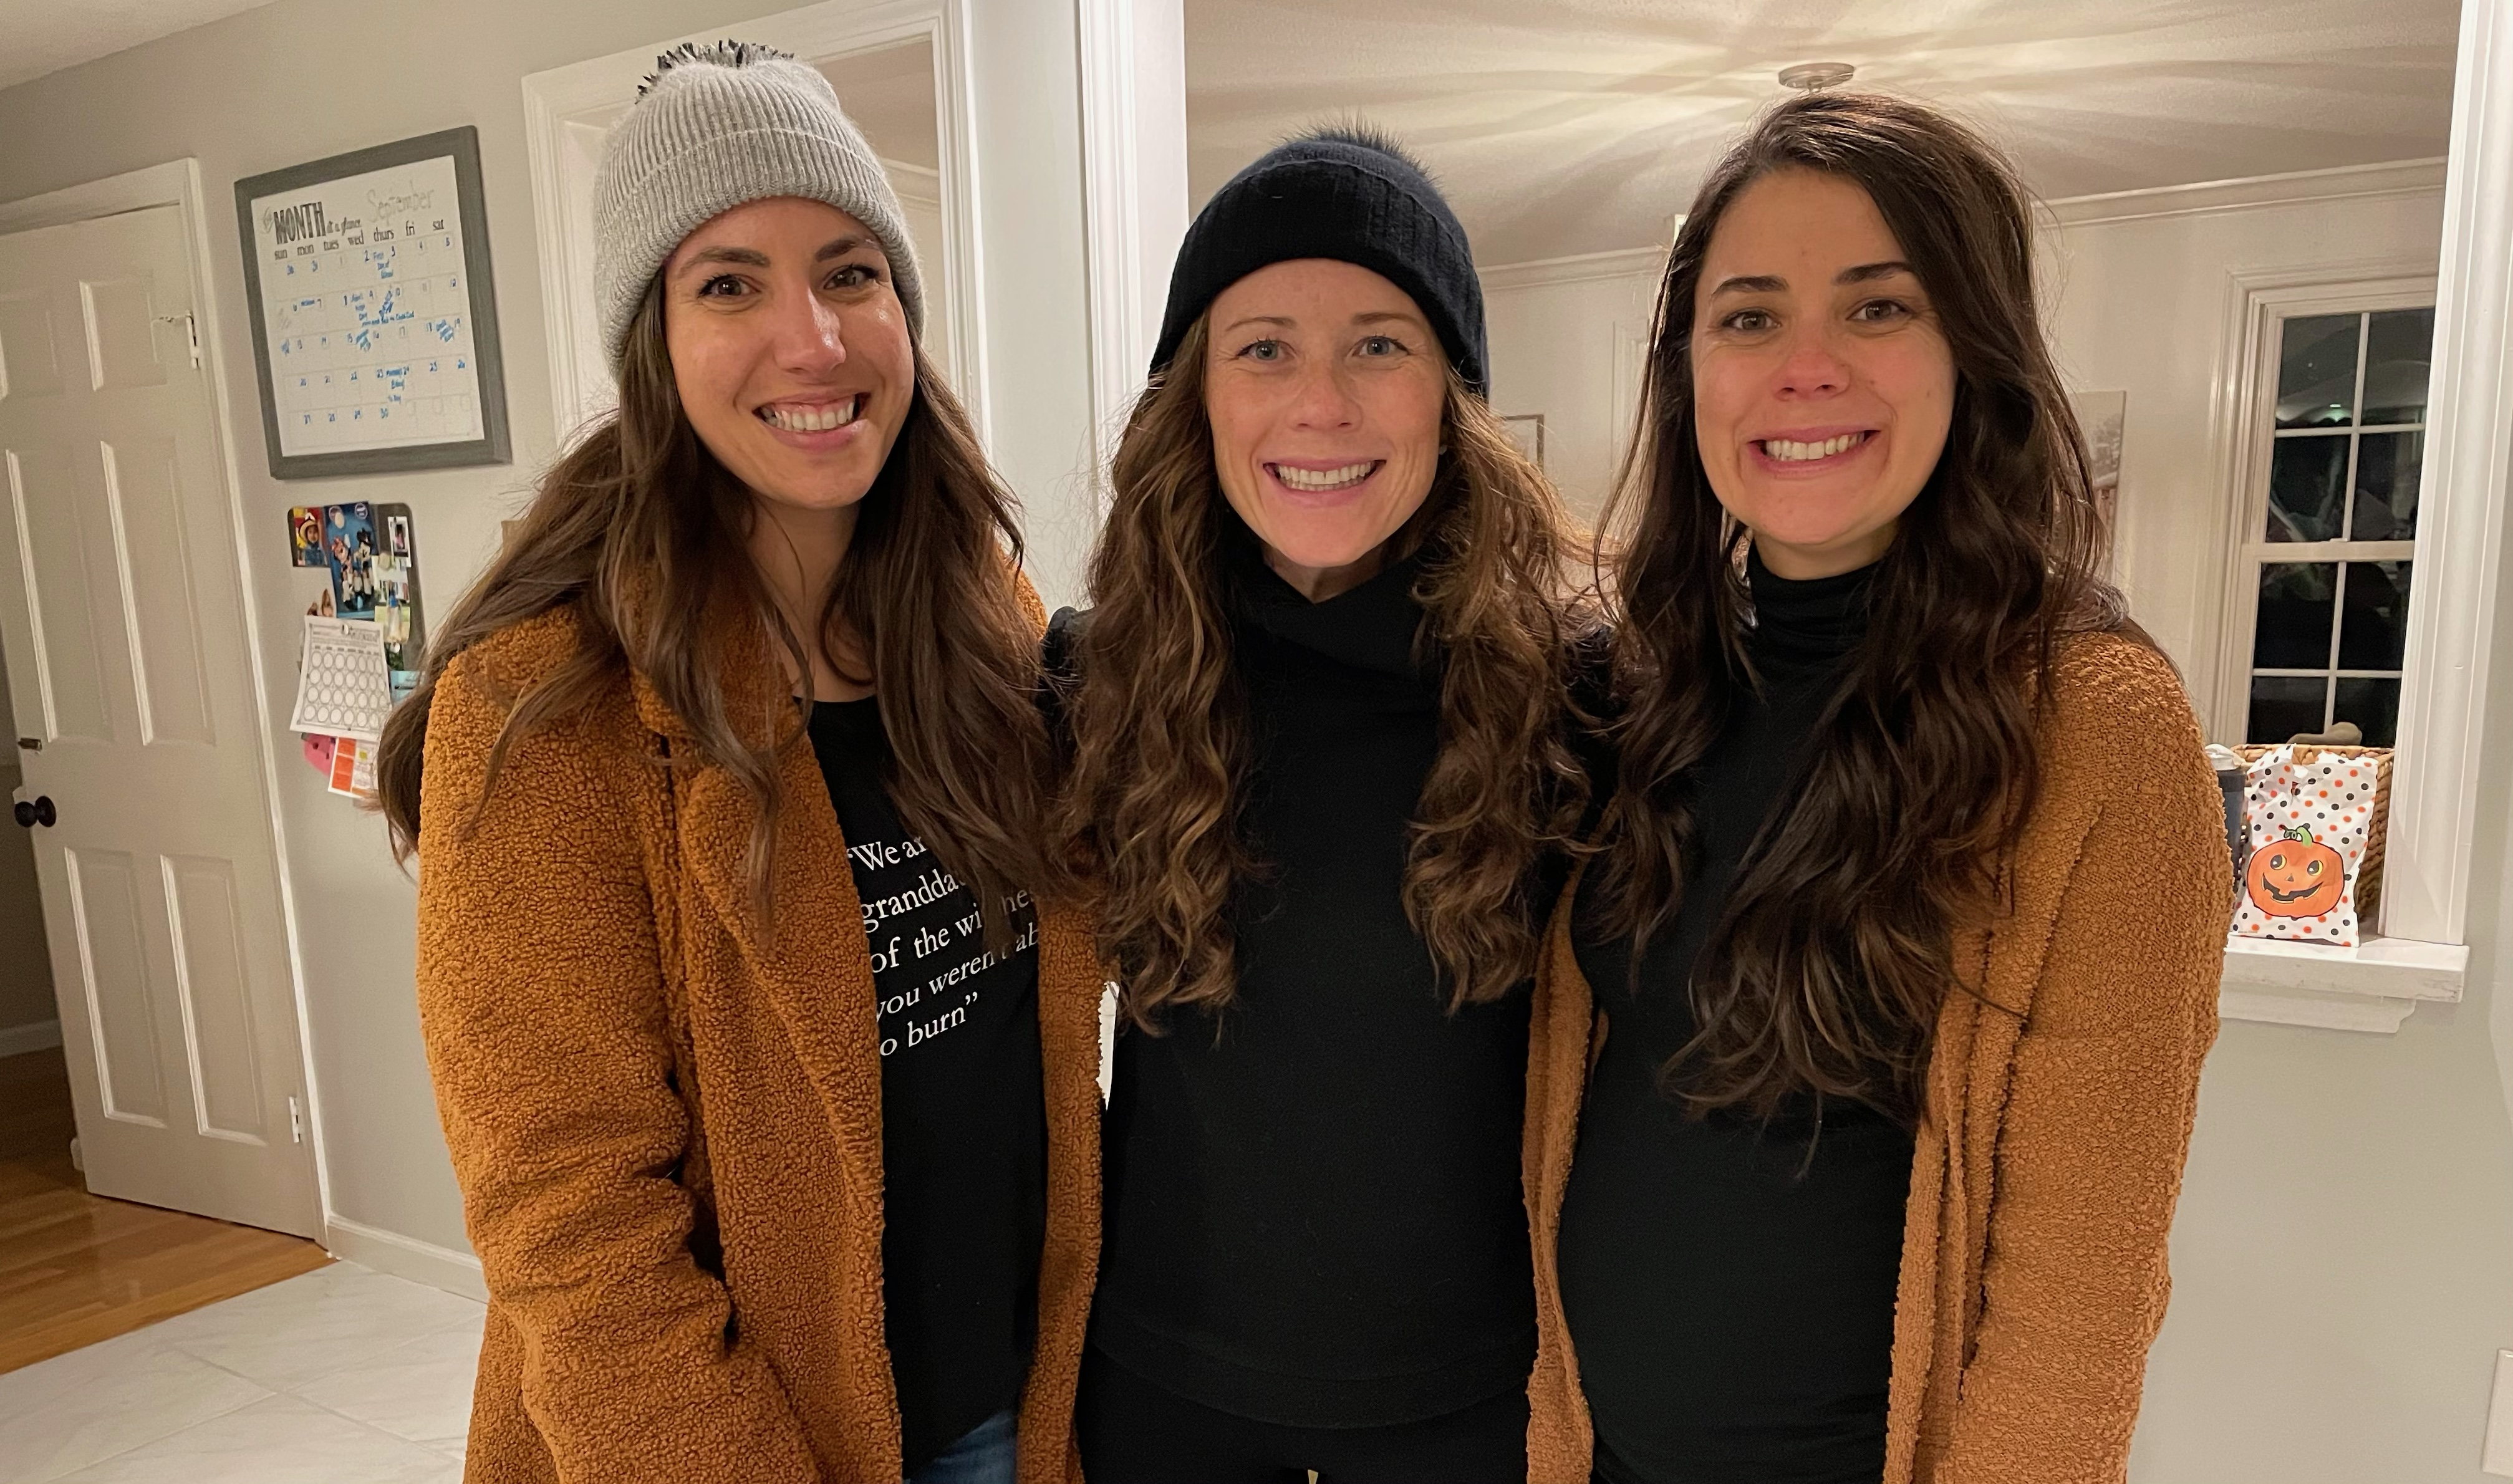 sisters in matching black and camel outfits